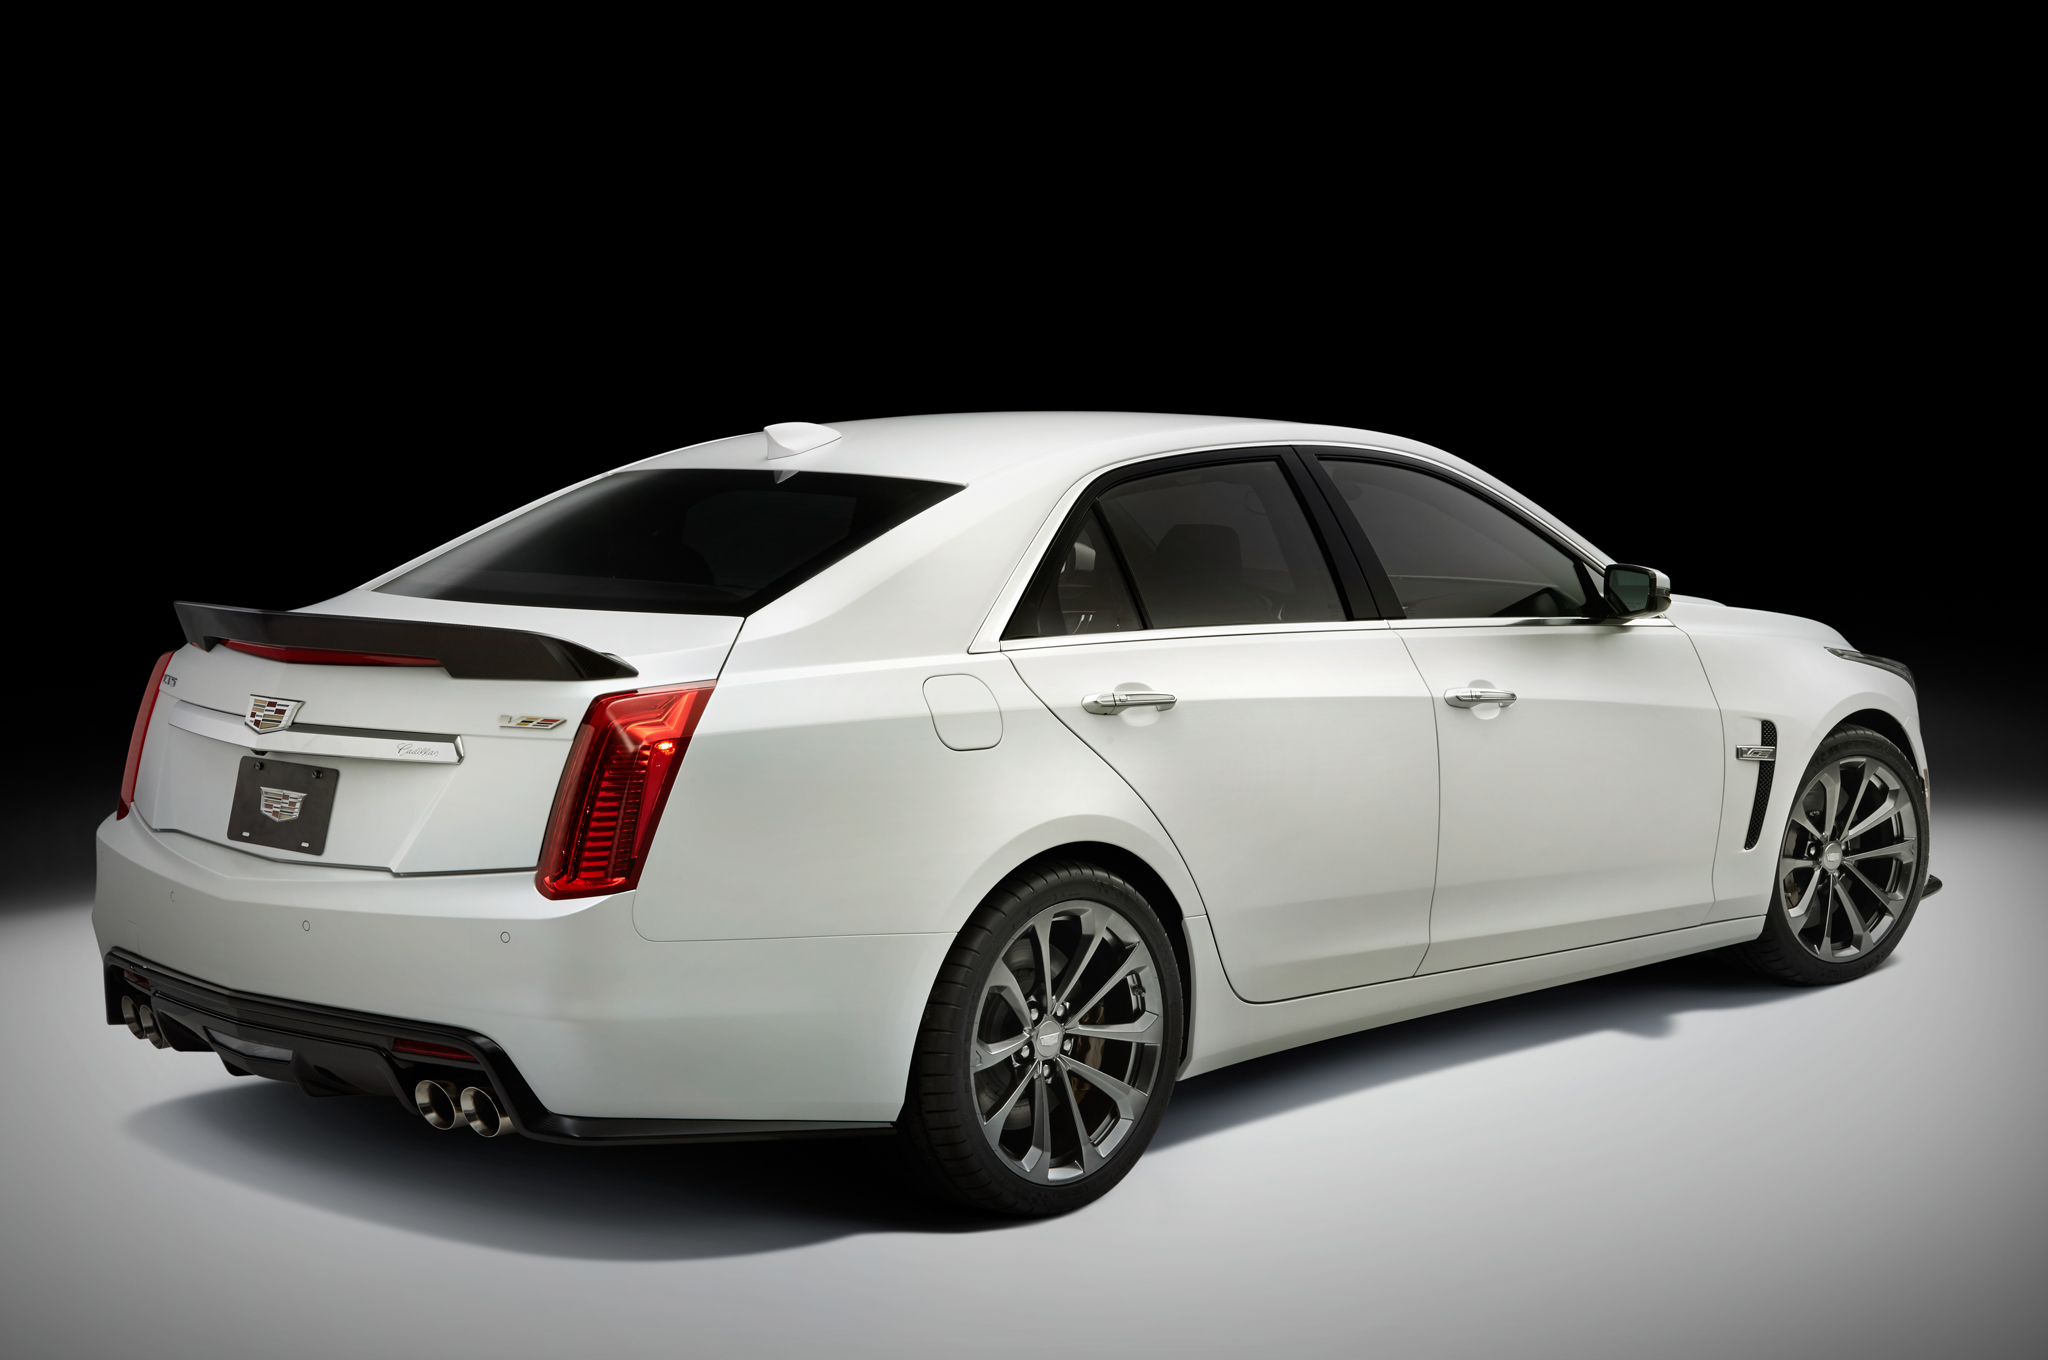 frost super com crystal white editions sedan price autonews cadillac myautoworld cts v